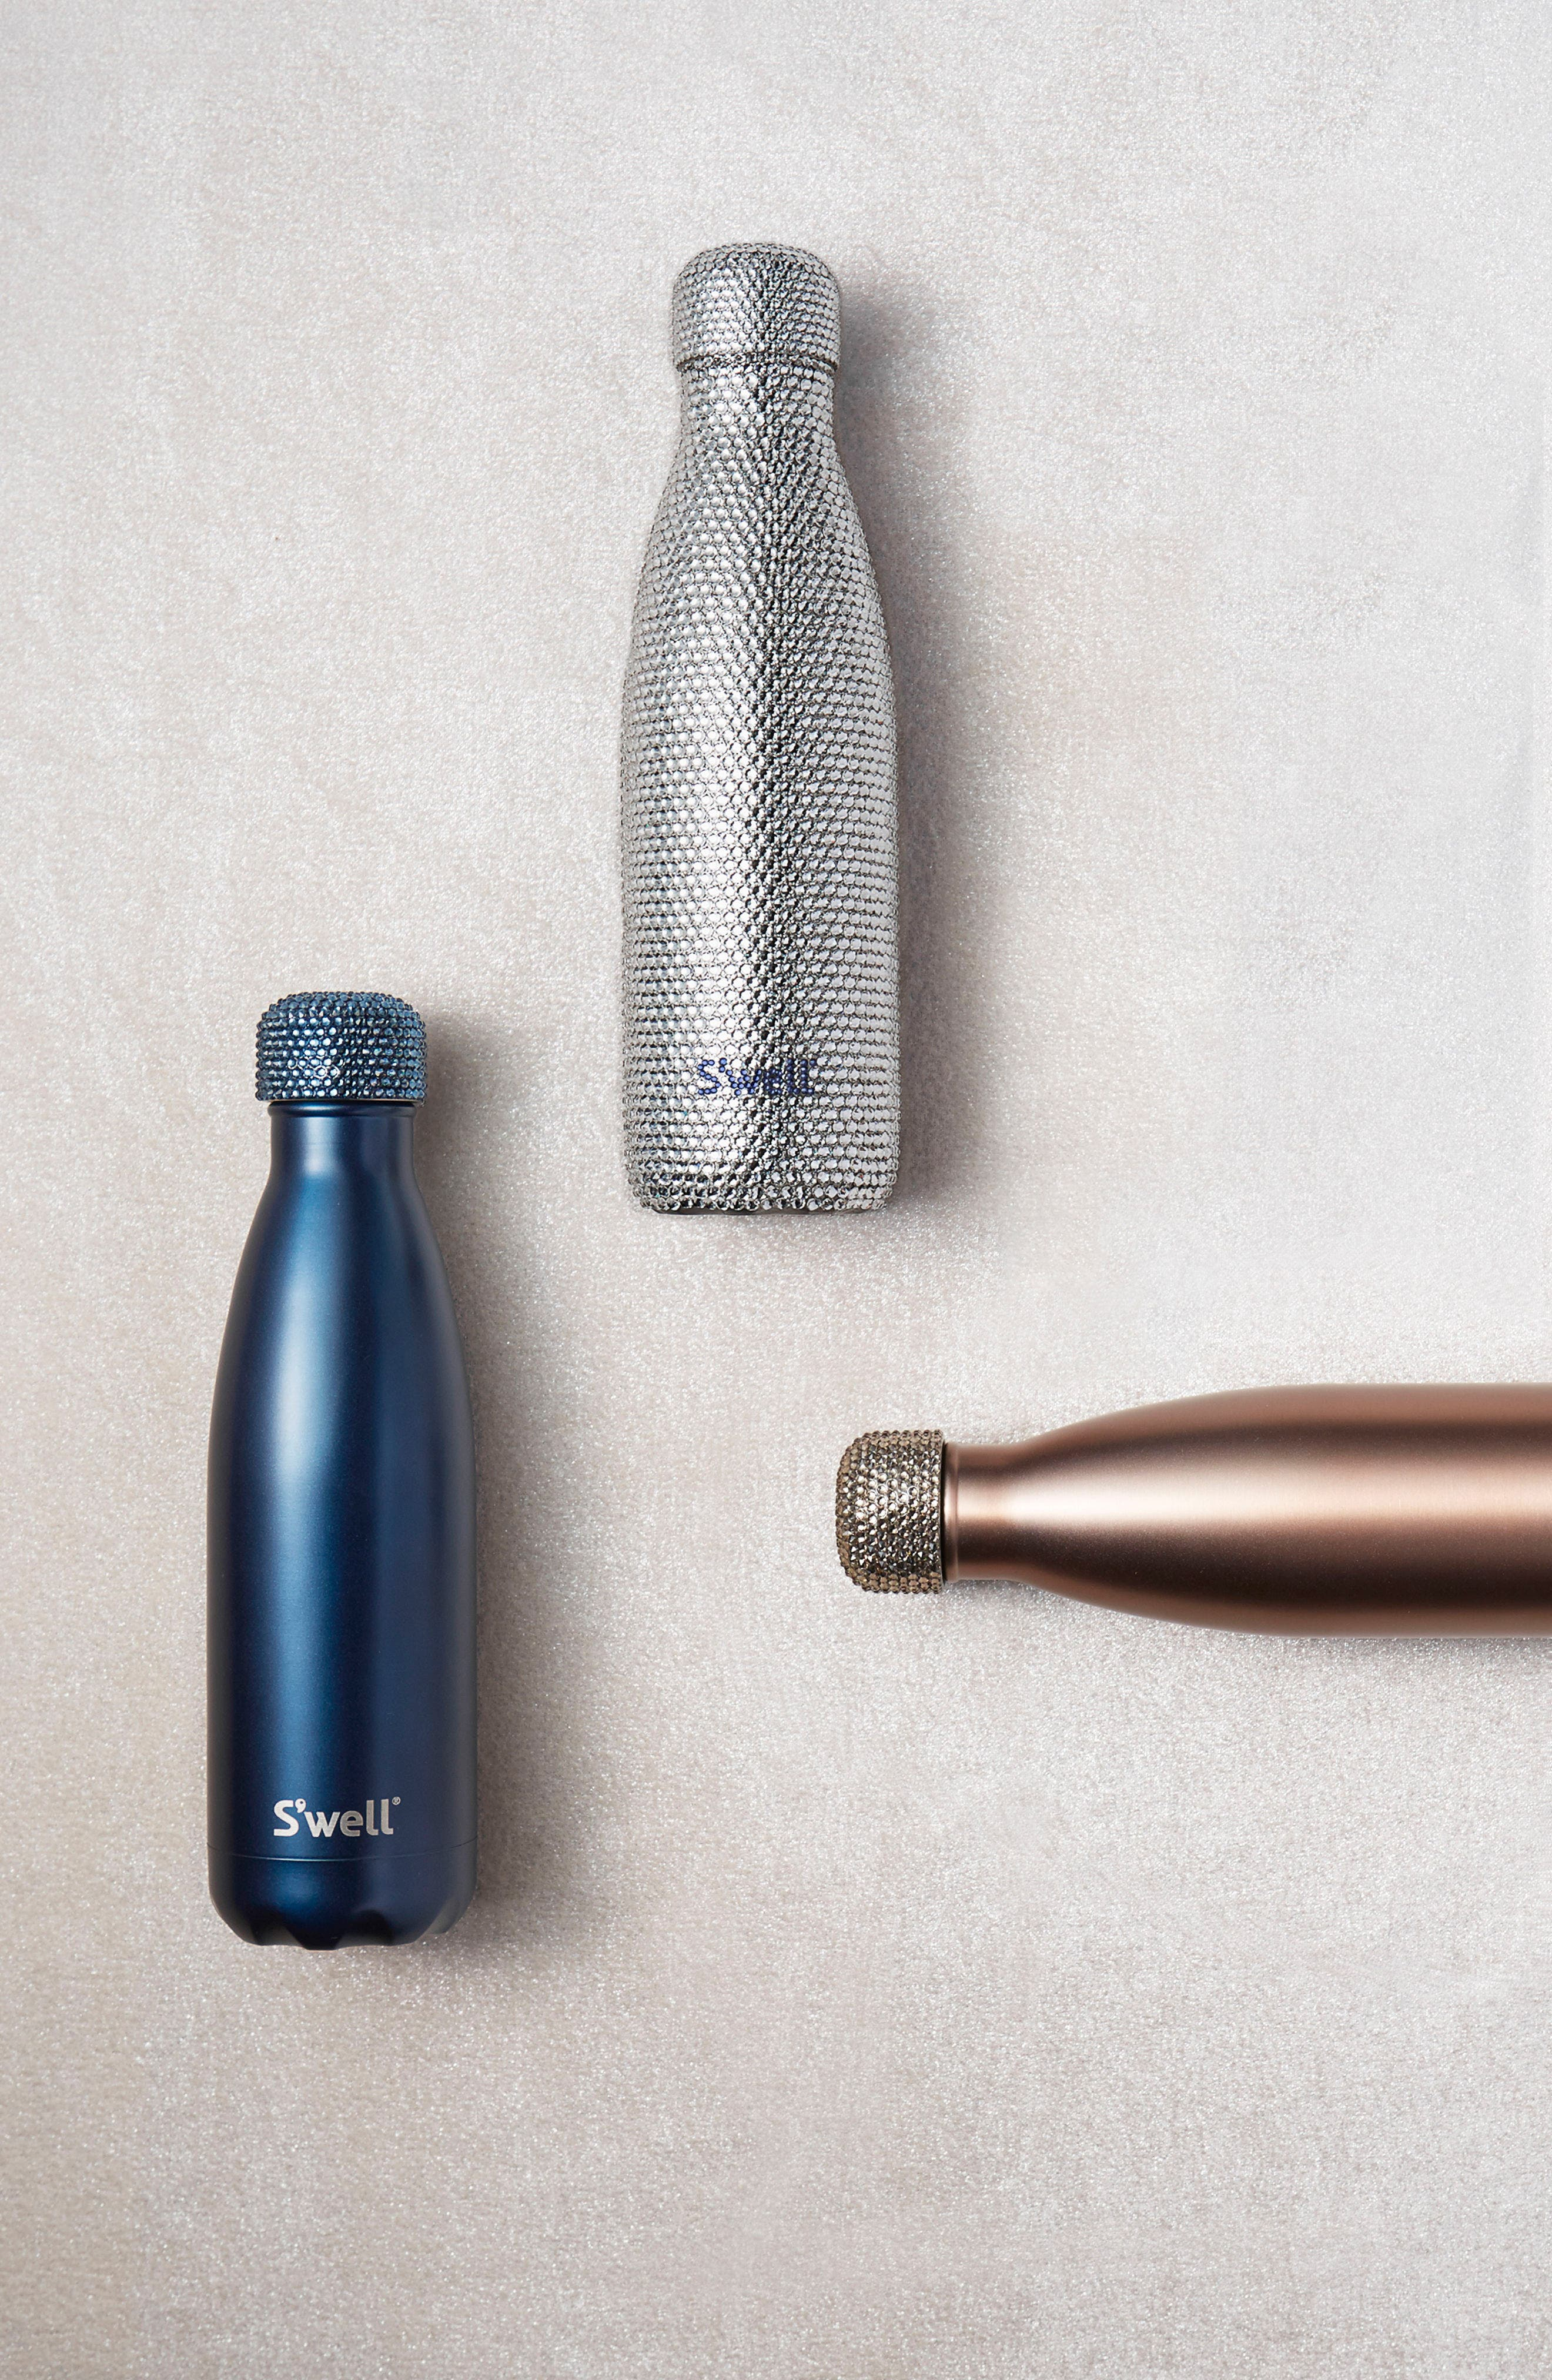 Alina Swarovski Crystal Insulated Stainless Steel Water Bottle,                             Alternate thumbnail 5, color,                             Alina